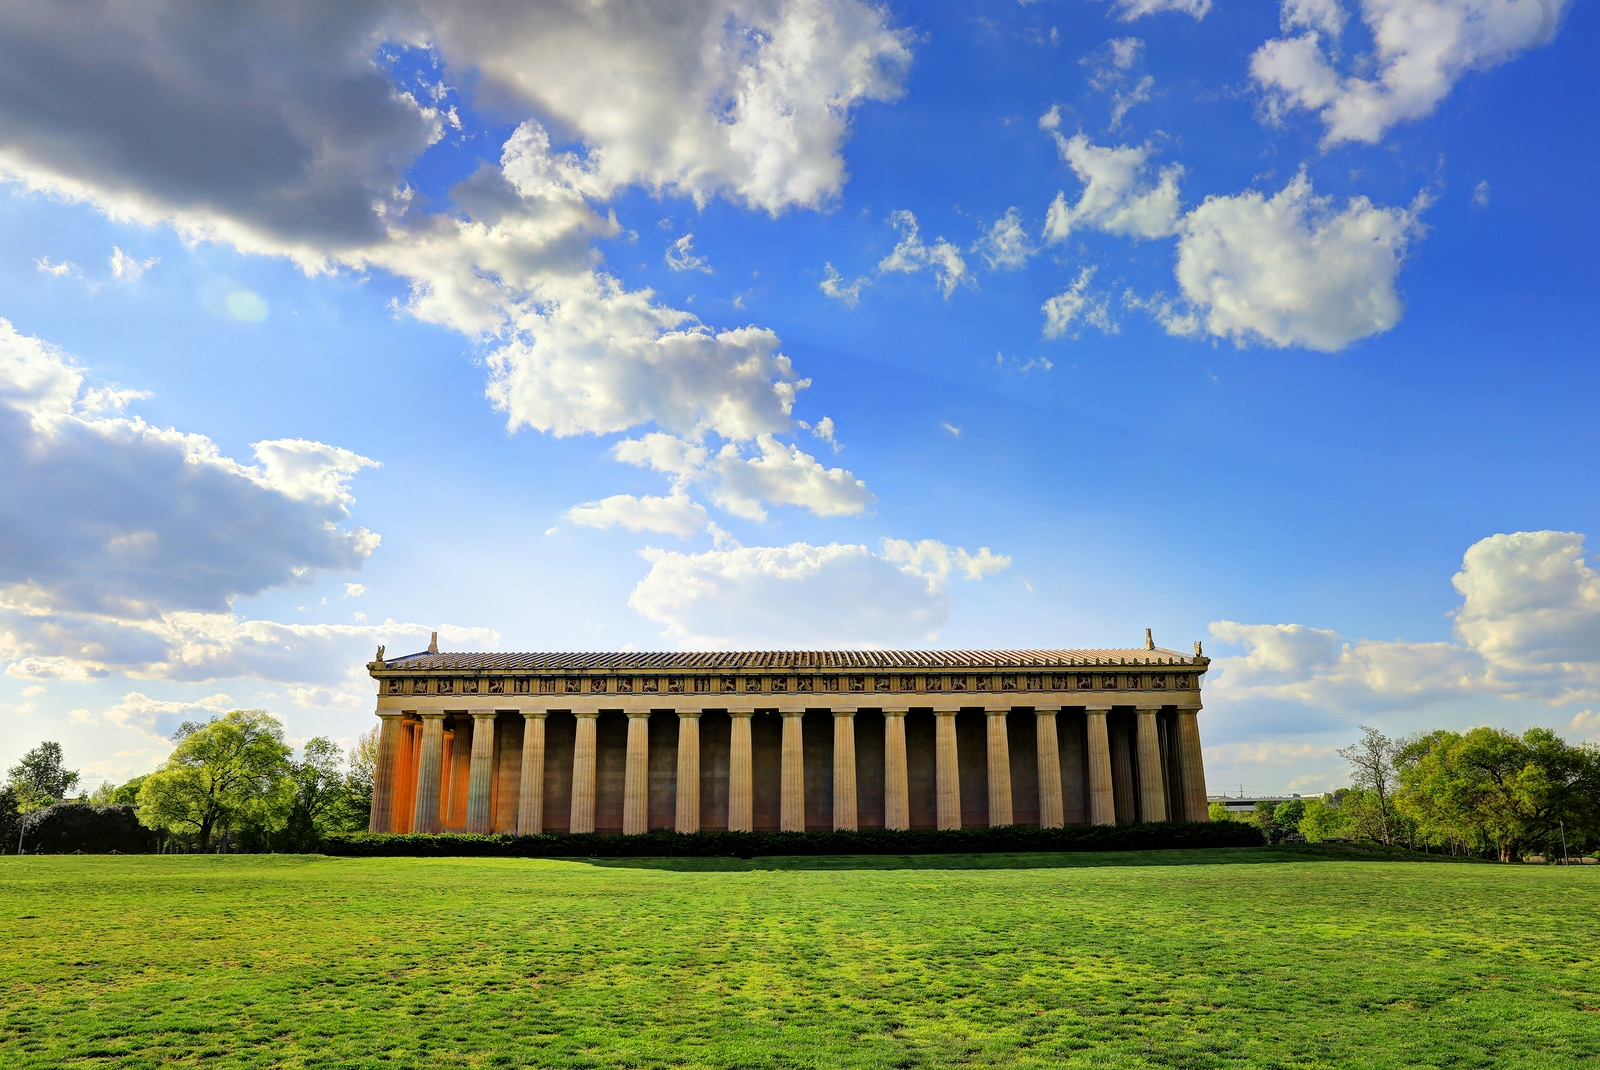 The Parthenon in Nashville by Booking Express Travel